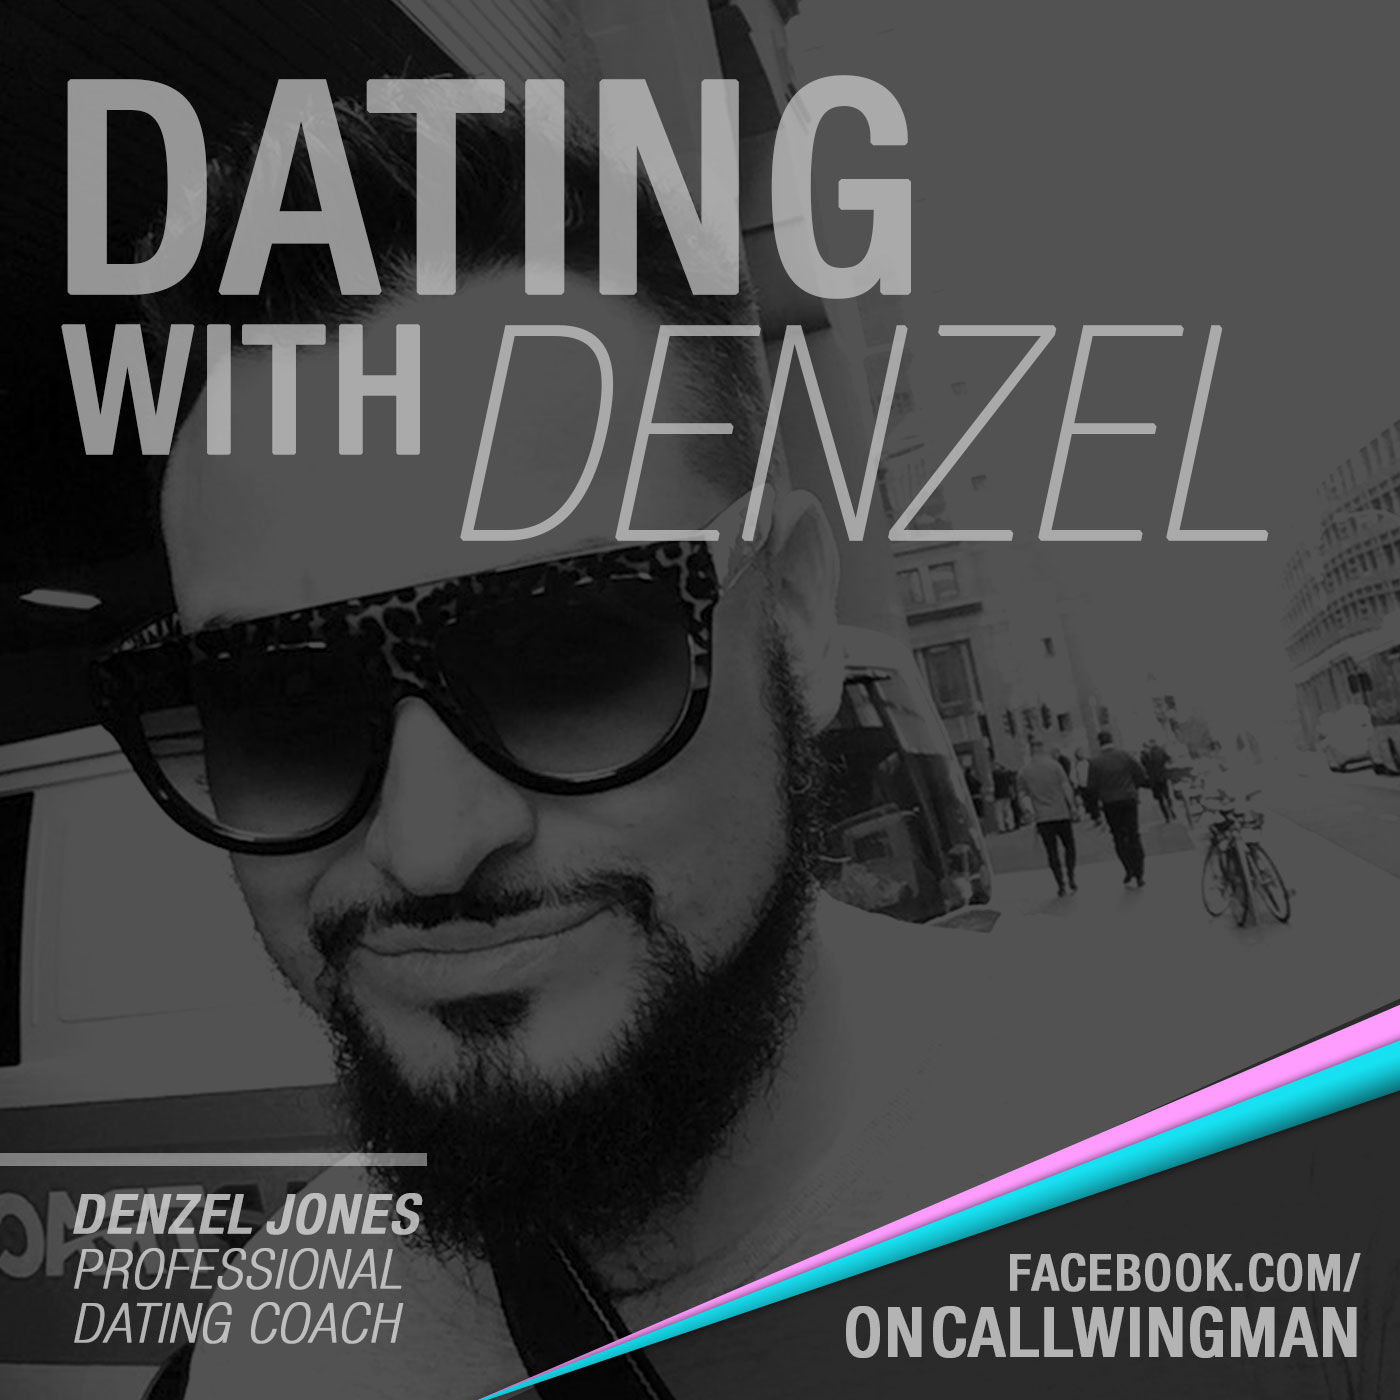 But is it. Online relationships: Are you dating a scammer?.